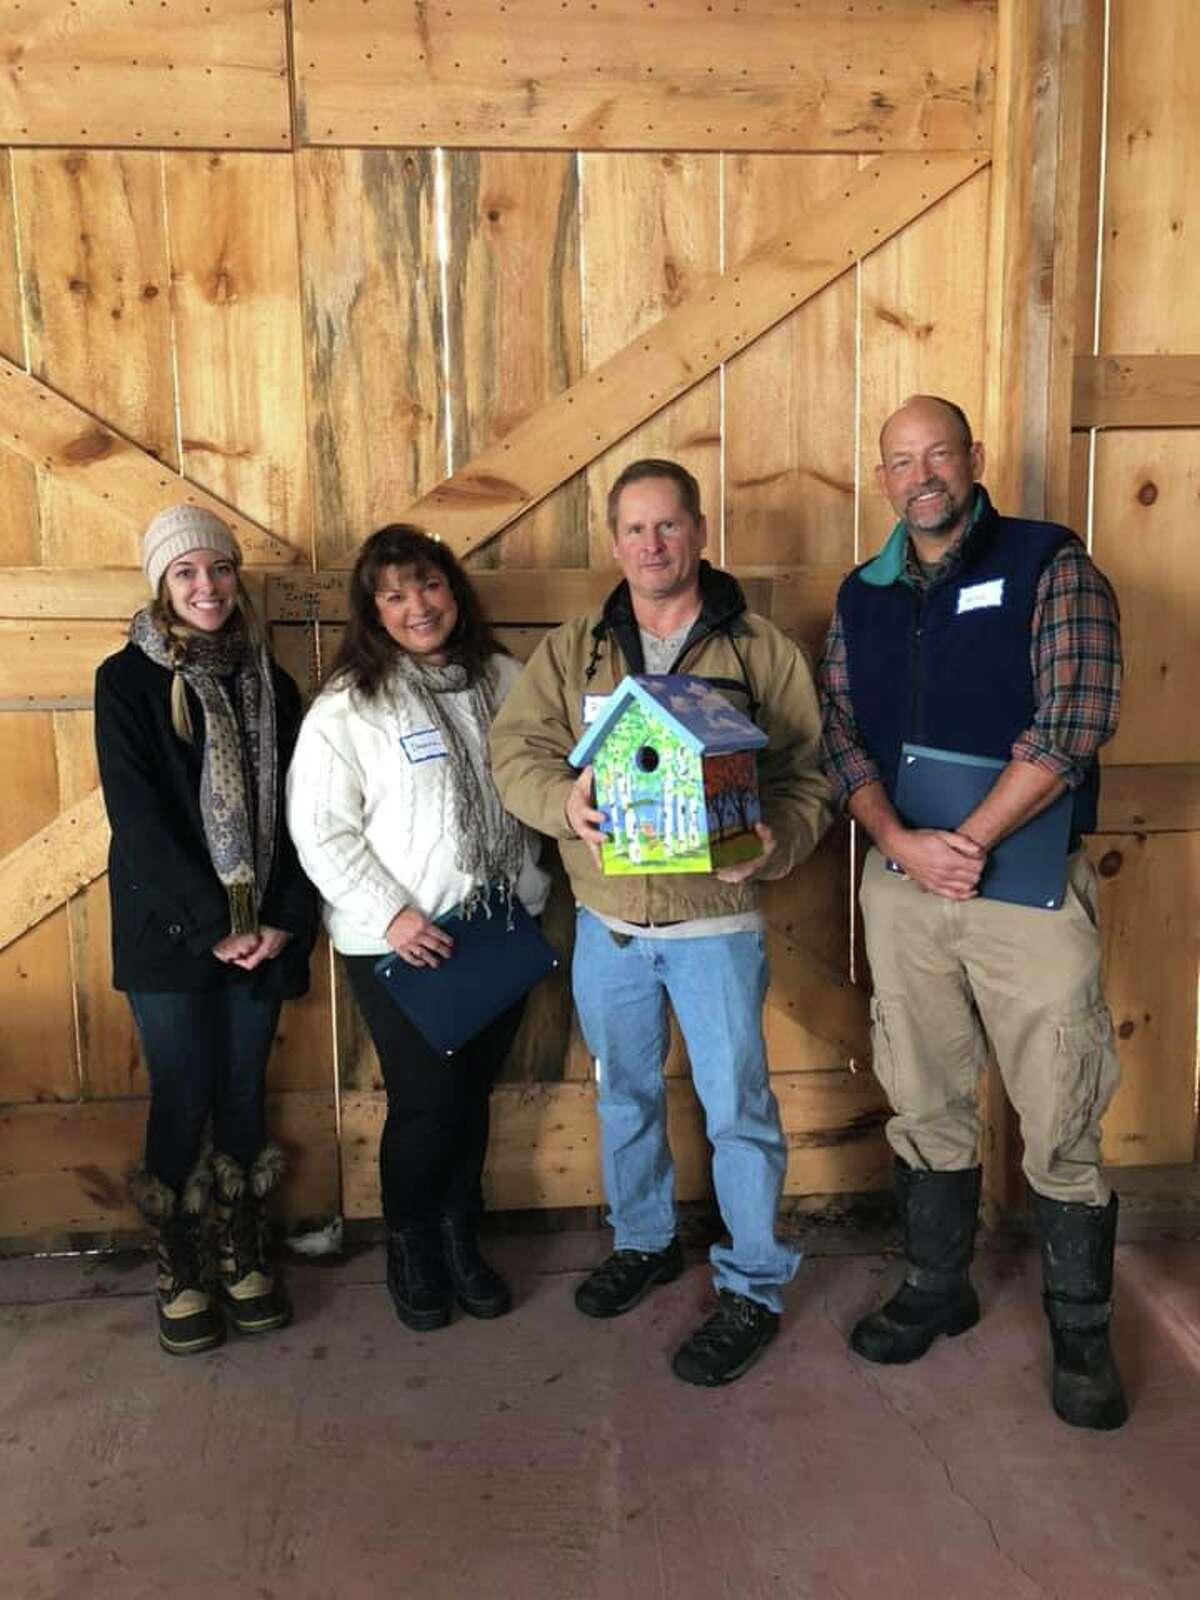 From left is Dana Kear (PLAN Program Associate) for Gail Grow, Deanna and Rob Hadley (for Dolores Arste and David Hickey) and Will Orthwein (PLAN Chair)at the PLAN's celebration of Conservation Heroes.